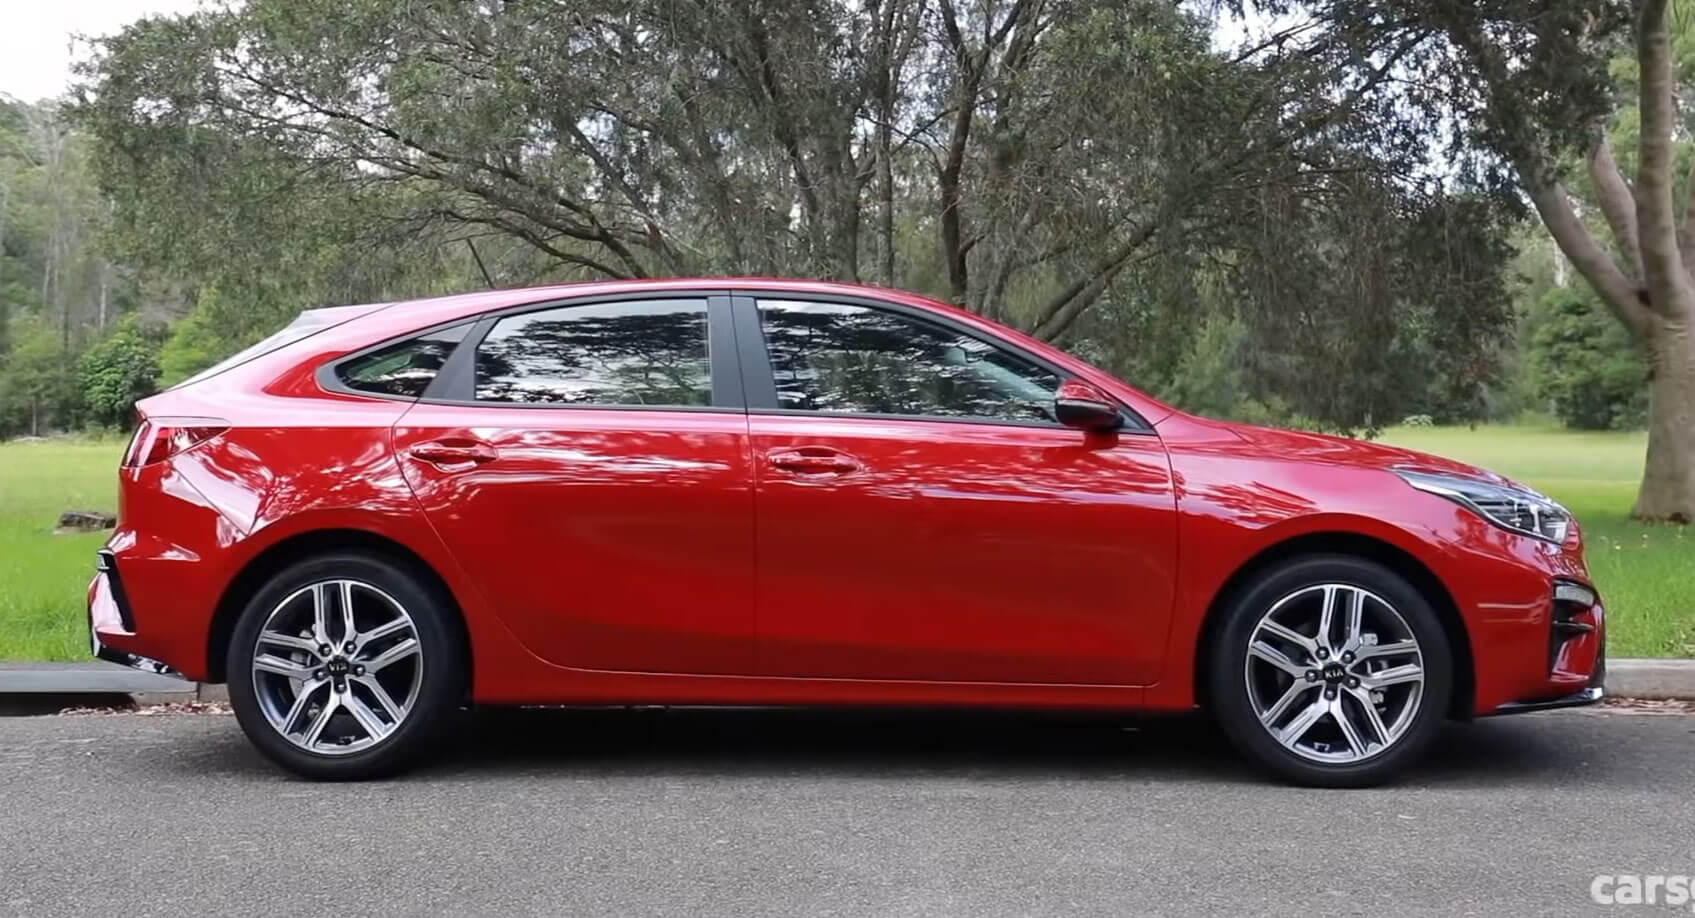 2019 Kia Cerato Forte Hatch Is A Good Buy But Can It